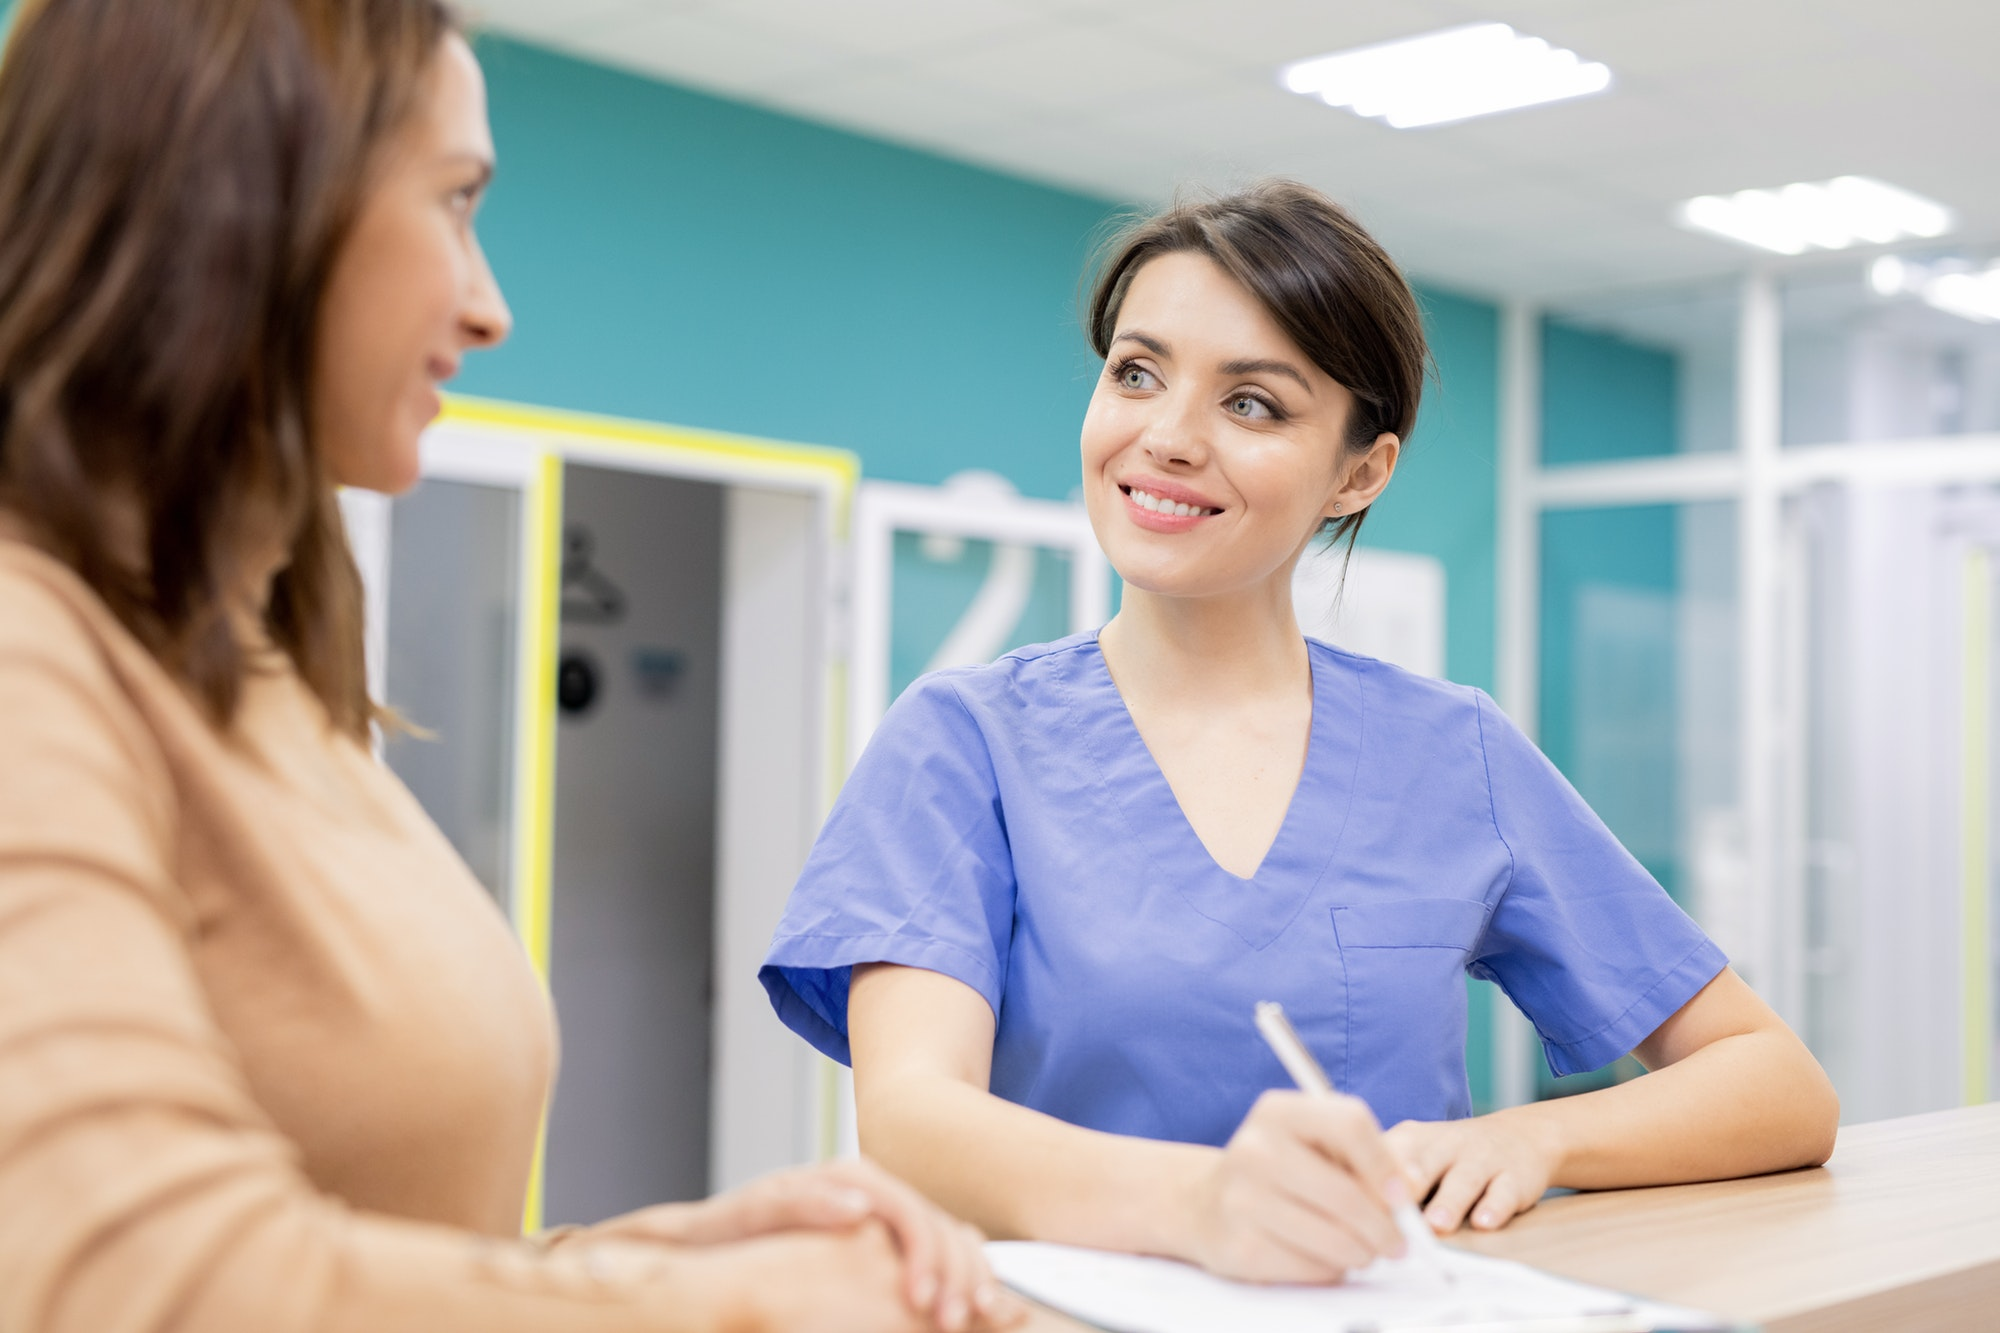 Doctor in uniform smiling at patient while consulting young woman in clinics